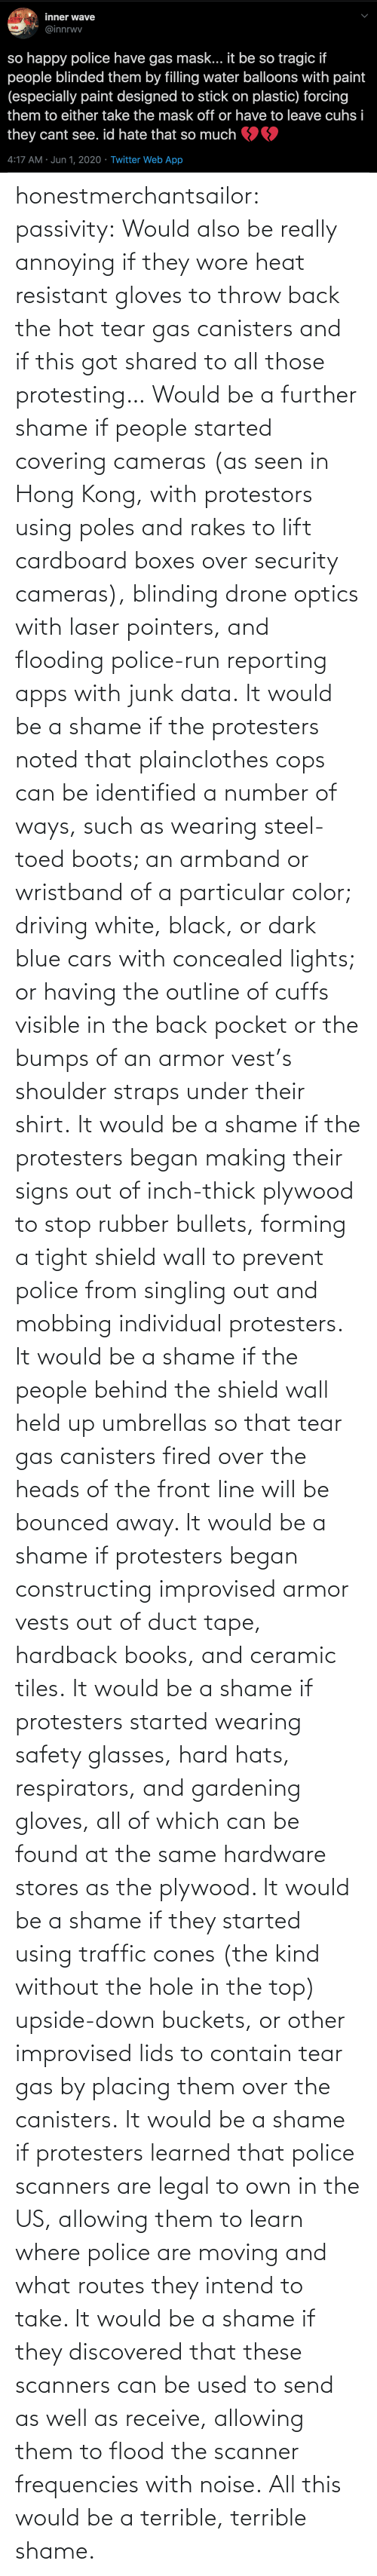 Without: honestmerchantsailor:  passivity: Would also be really annoying if they wore heat resistant gloves to throw back the hot tear gas canisters and if this got shared to all those protesting… Would be a further shame if people started covering cameras (as seen in Hong Kong, with protestors using poles and rakes to lift cardboard boxes over security cameras), blinding drone optics with laser pointers, and flooding police-run reporting apps with junk data. It would be a shame if the protesters noted that plainclothes cops can be identified a number of ways, such as wearing steel-toed boots; an armband or wristband of a particular color; driving white, black, or dark blue cars with concealed lights; or having the outline of cuffs visible in the back pocket or the bumps of an armor vest's shoulder straps under their shirt. It would be a shame if the protesters began making their signs out of inch-thick plywood to stop rubber bullets, forming a tight shield wall to prevent police from singling out and mobbing individual protesters. It would be a shame if the people behind the shield wall held up umbrellas so that tear gas canisters fired over the heads of the front line will be bounced away. It would be a shame if protesters began constructing improvised armor vests out of duct tape, hardback books, and ceramic tiles. It would be a shame if protesters started wearing safety glasses, hard hats, respirators, and gardening gloves, all of which can be found at the same hardware stores as the plywood. It would be a shame if they started using traffic cones (the kind without the hole in the top) upside-down buckets, or other improvised lids to contain tear gas by placing them over the canisters. It would be a shame if protesters learned that police scanners are legal to own in the US, allowing them to learn where police are moving and what routes they intend to take. It would be a shame if they discovered that these scanners can be used to send as well as receive, allowing them to flood the scanner frequencies with noise. All this would be a terrible, terrible shame.